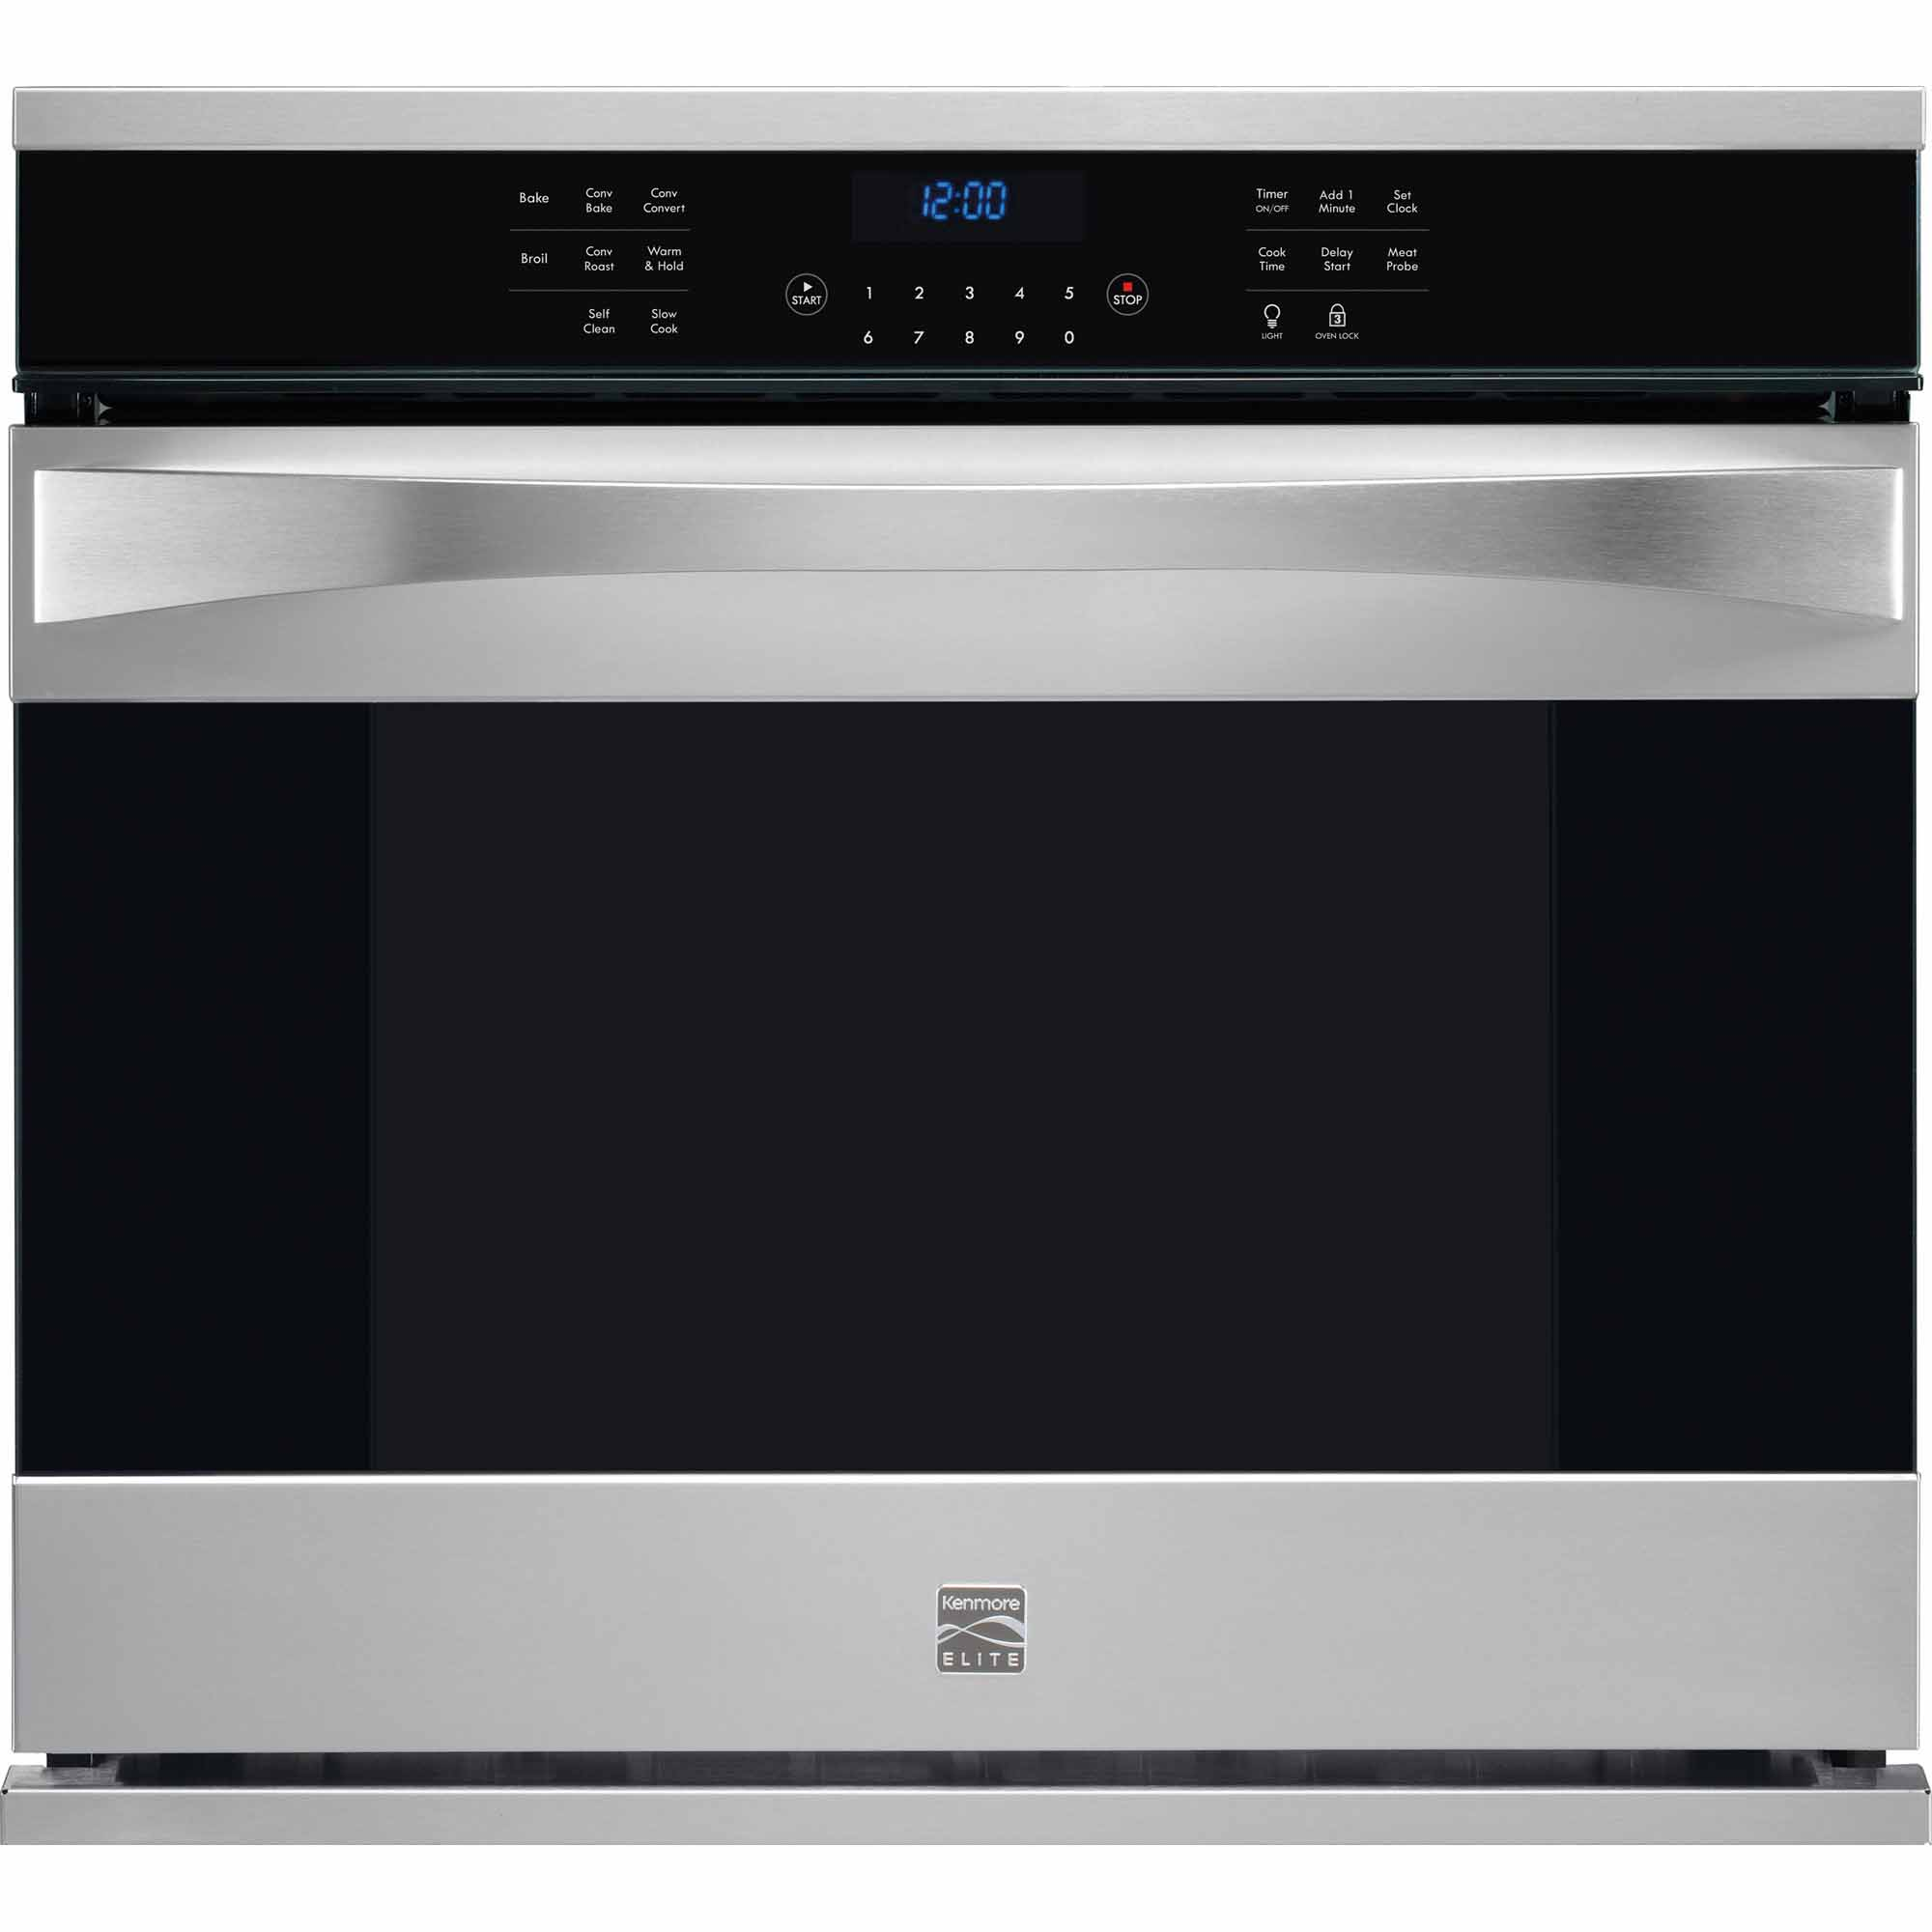 Kenmore Elite 48353 30 Electric Single Wall Oven - Stainless Steel